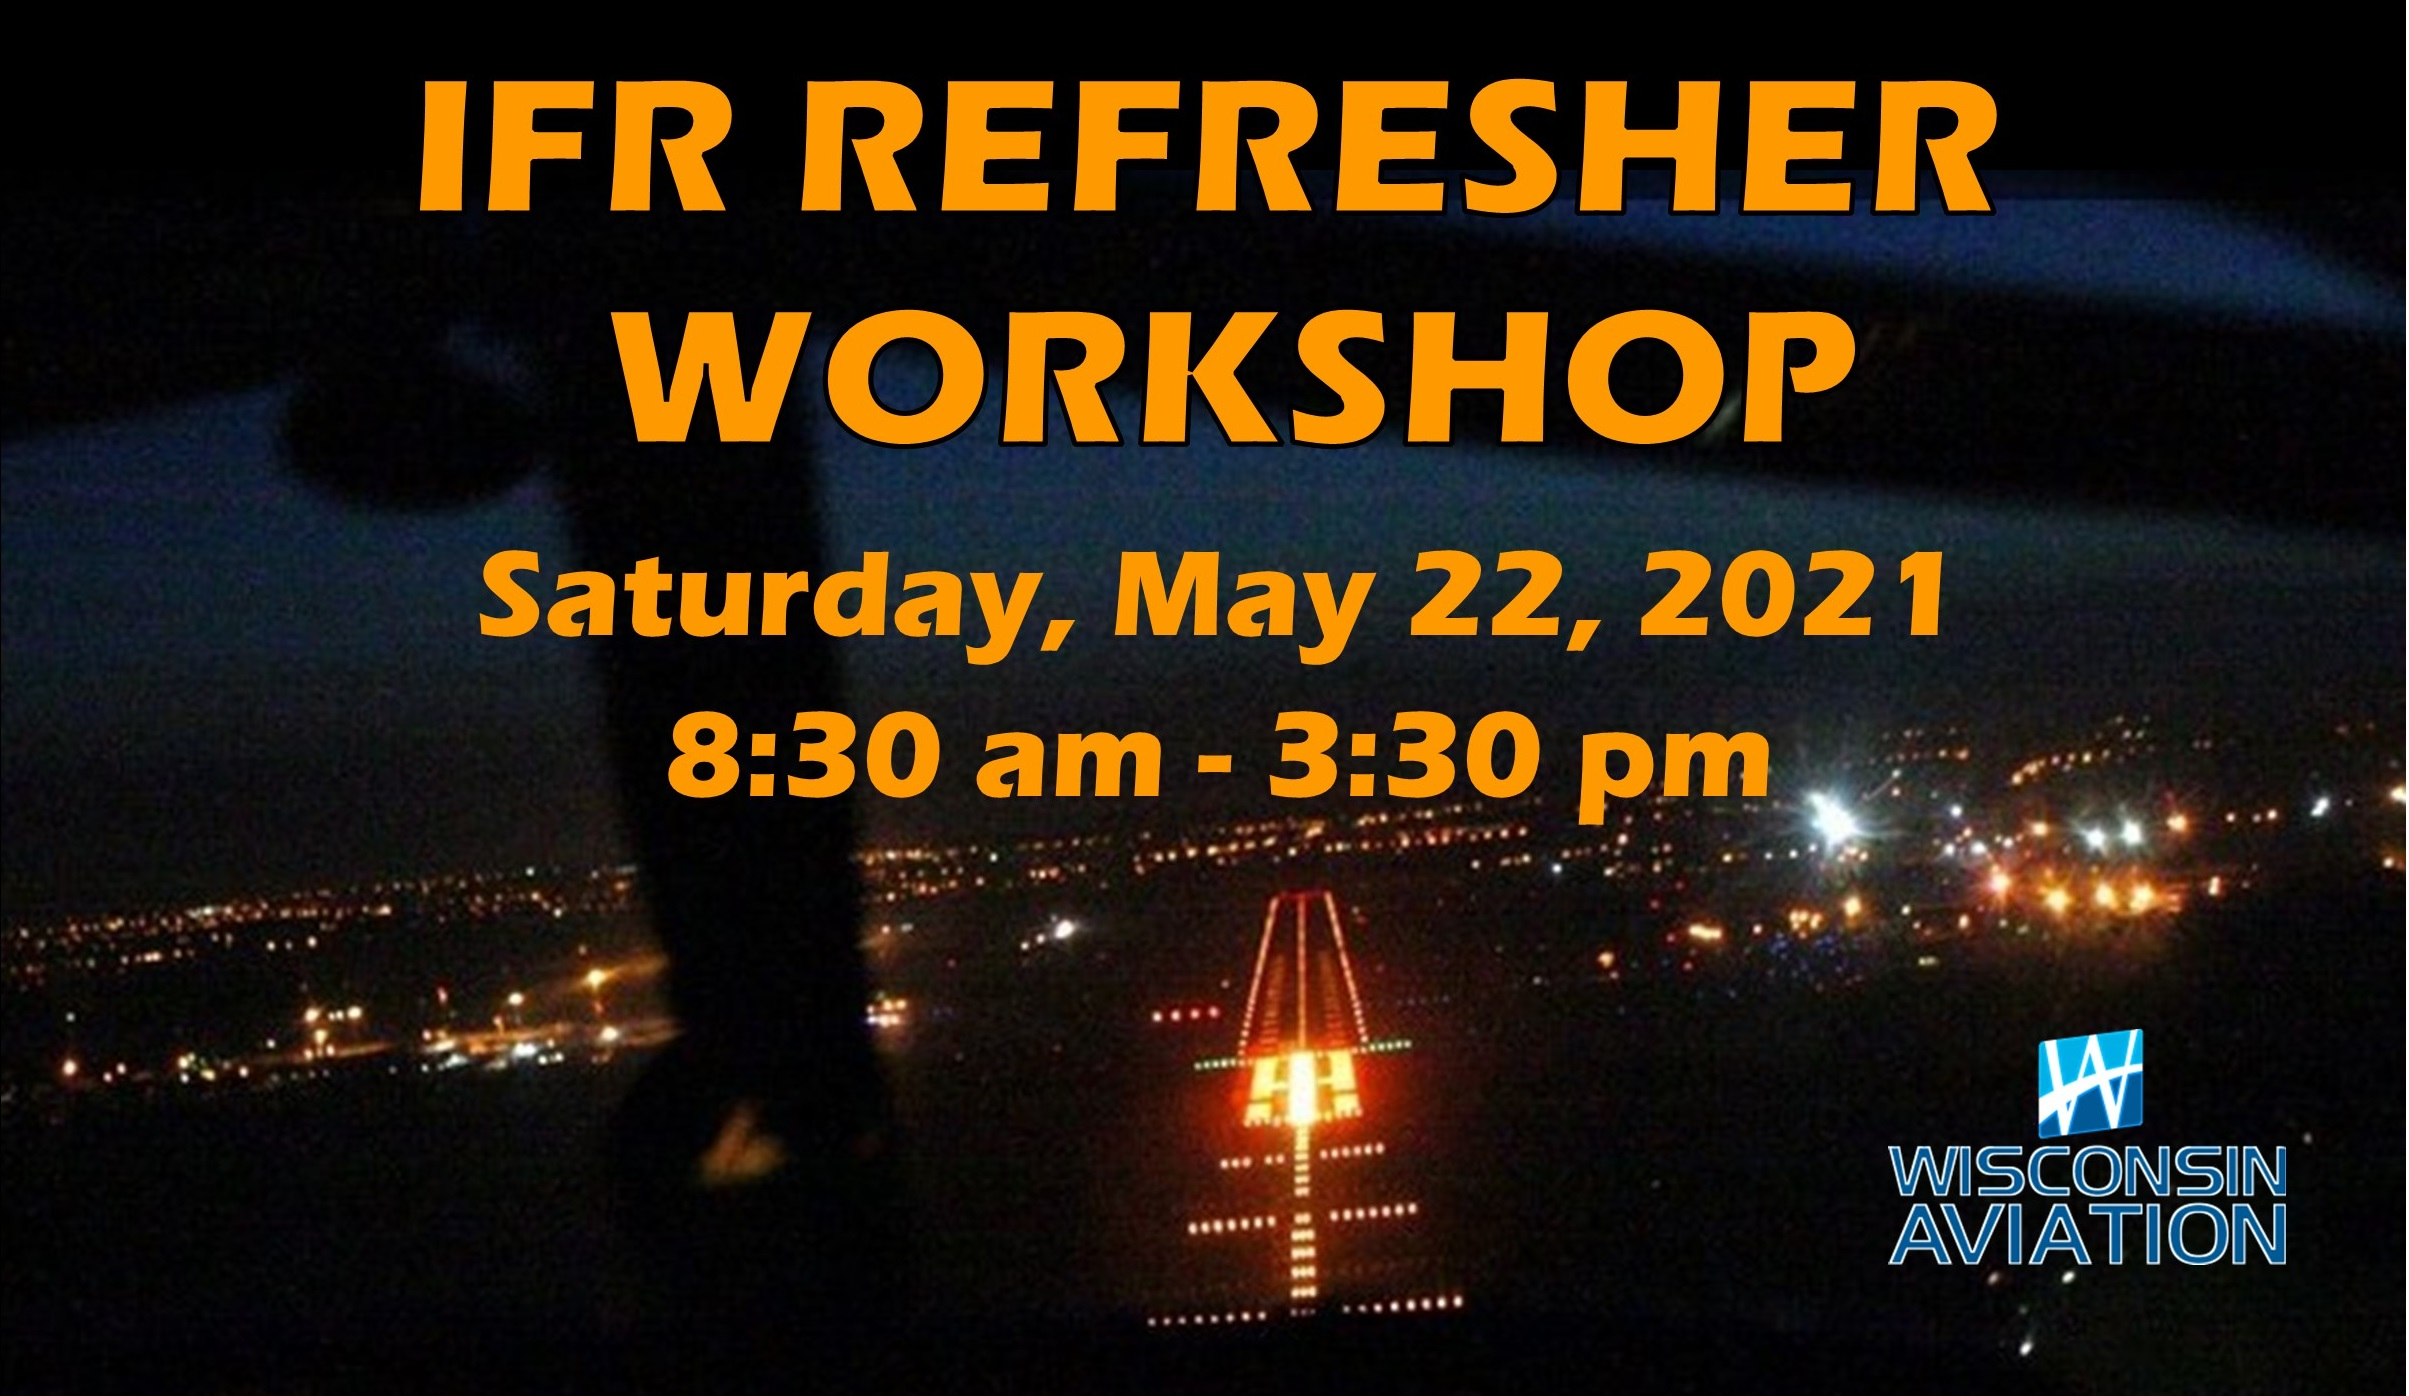 IFR-refresher